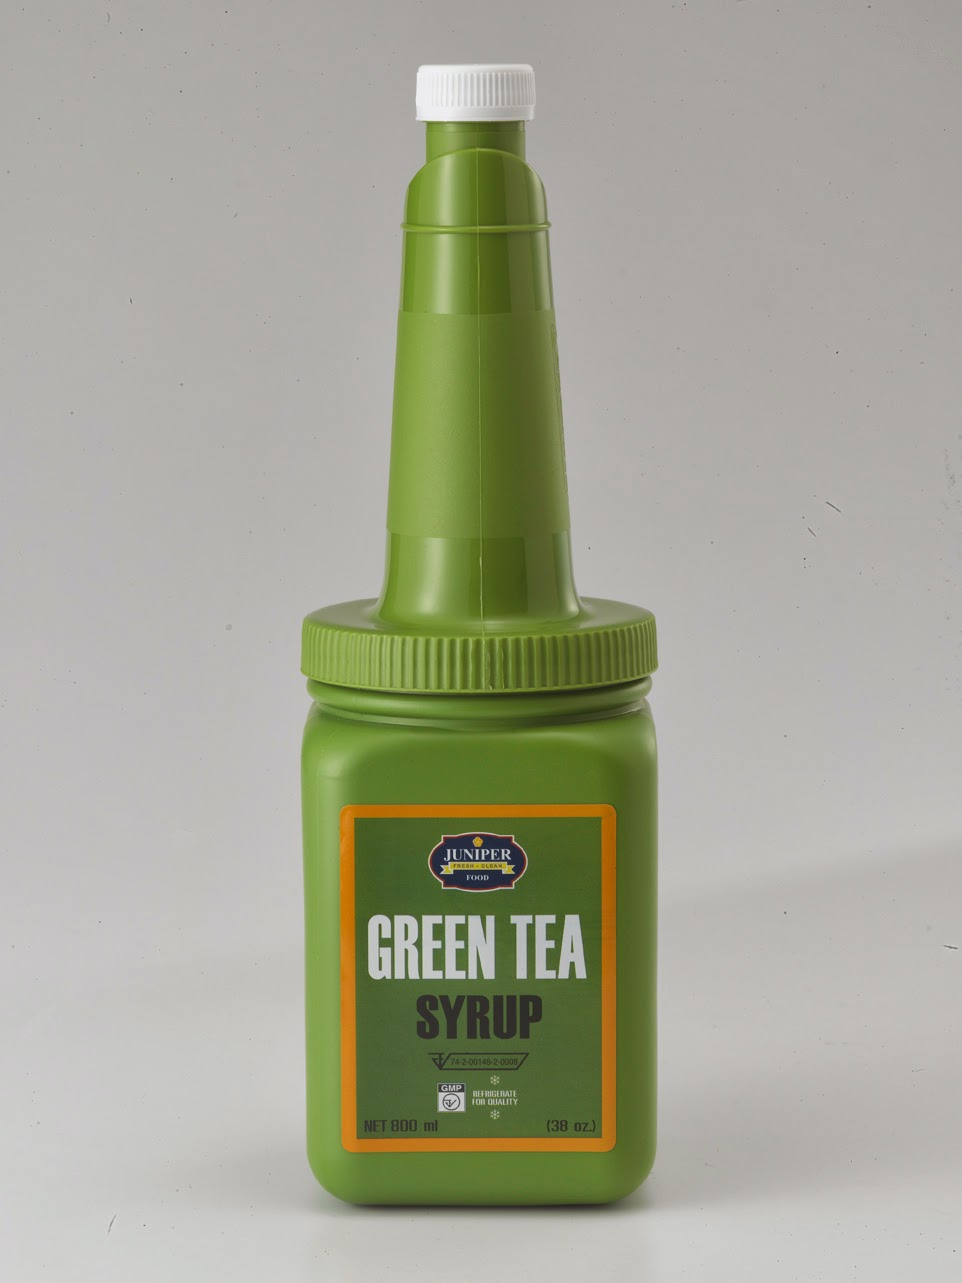 Juniper Greentea Syrup 800 ml.